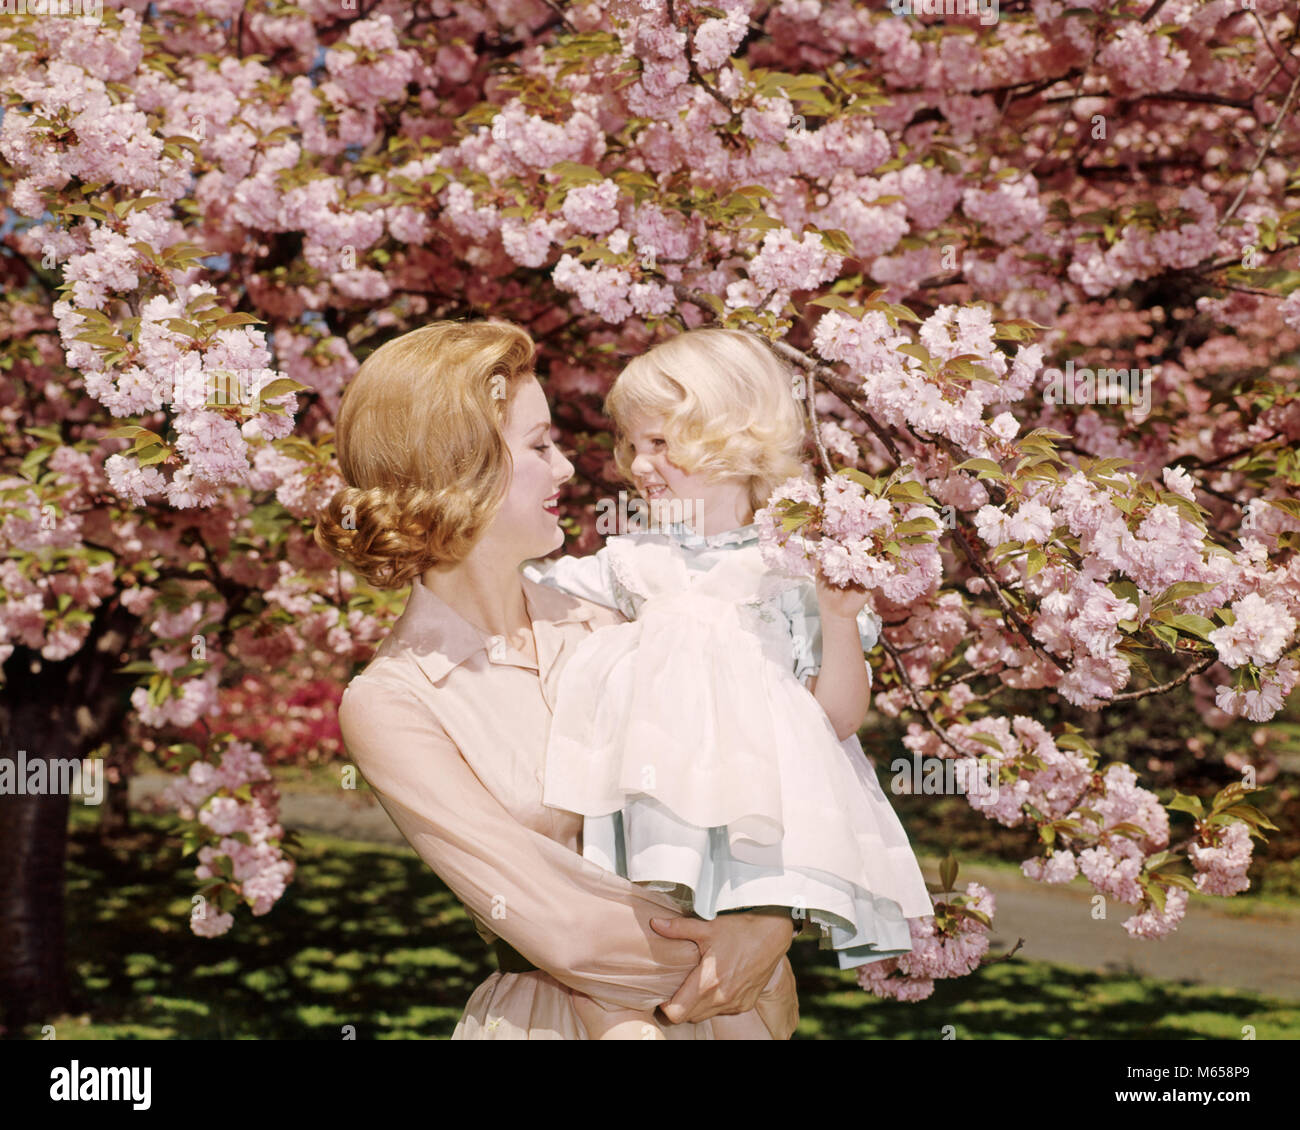 1950s 1960s REDHEAD MOTHER HOLDING BLONDE GIRL DAUGHTER AMONG CHERRY TREE BLOSSOMS - kb3112 HAR001 HARS NOSTALGIC - Stock Image